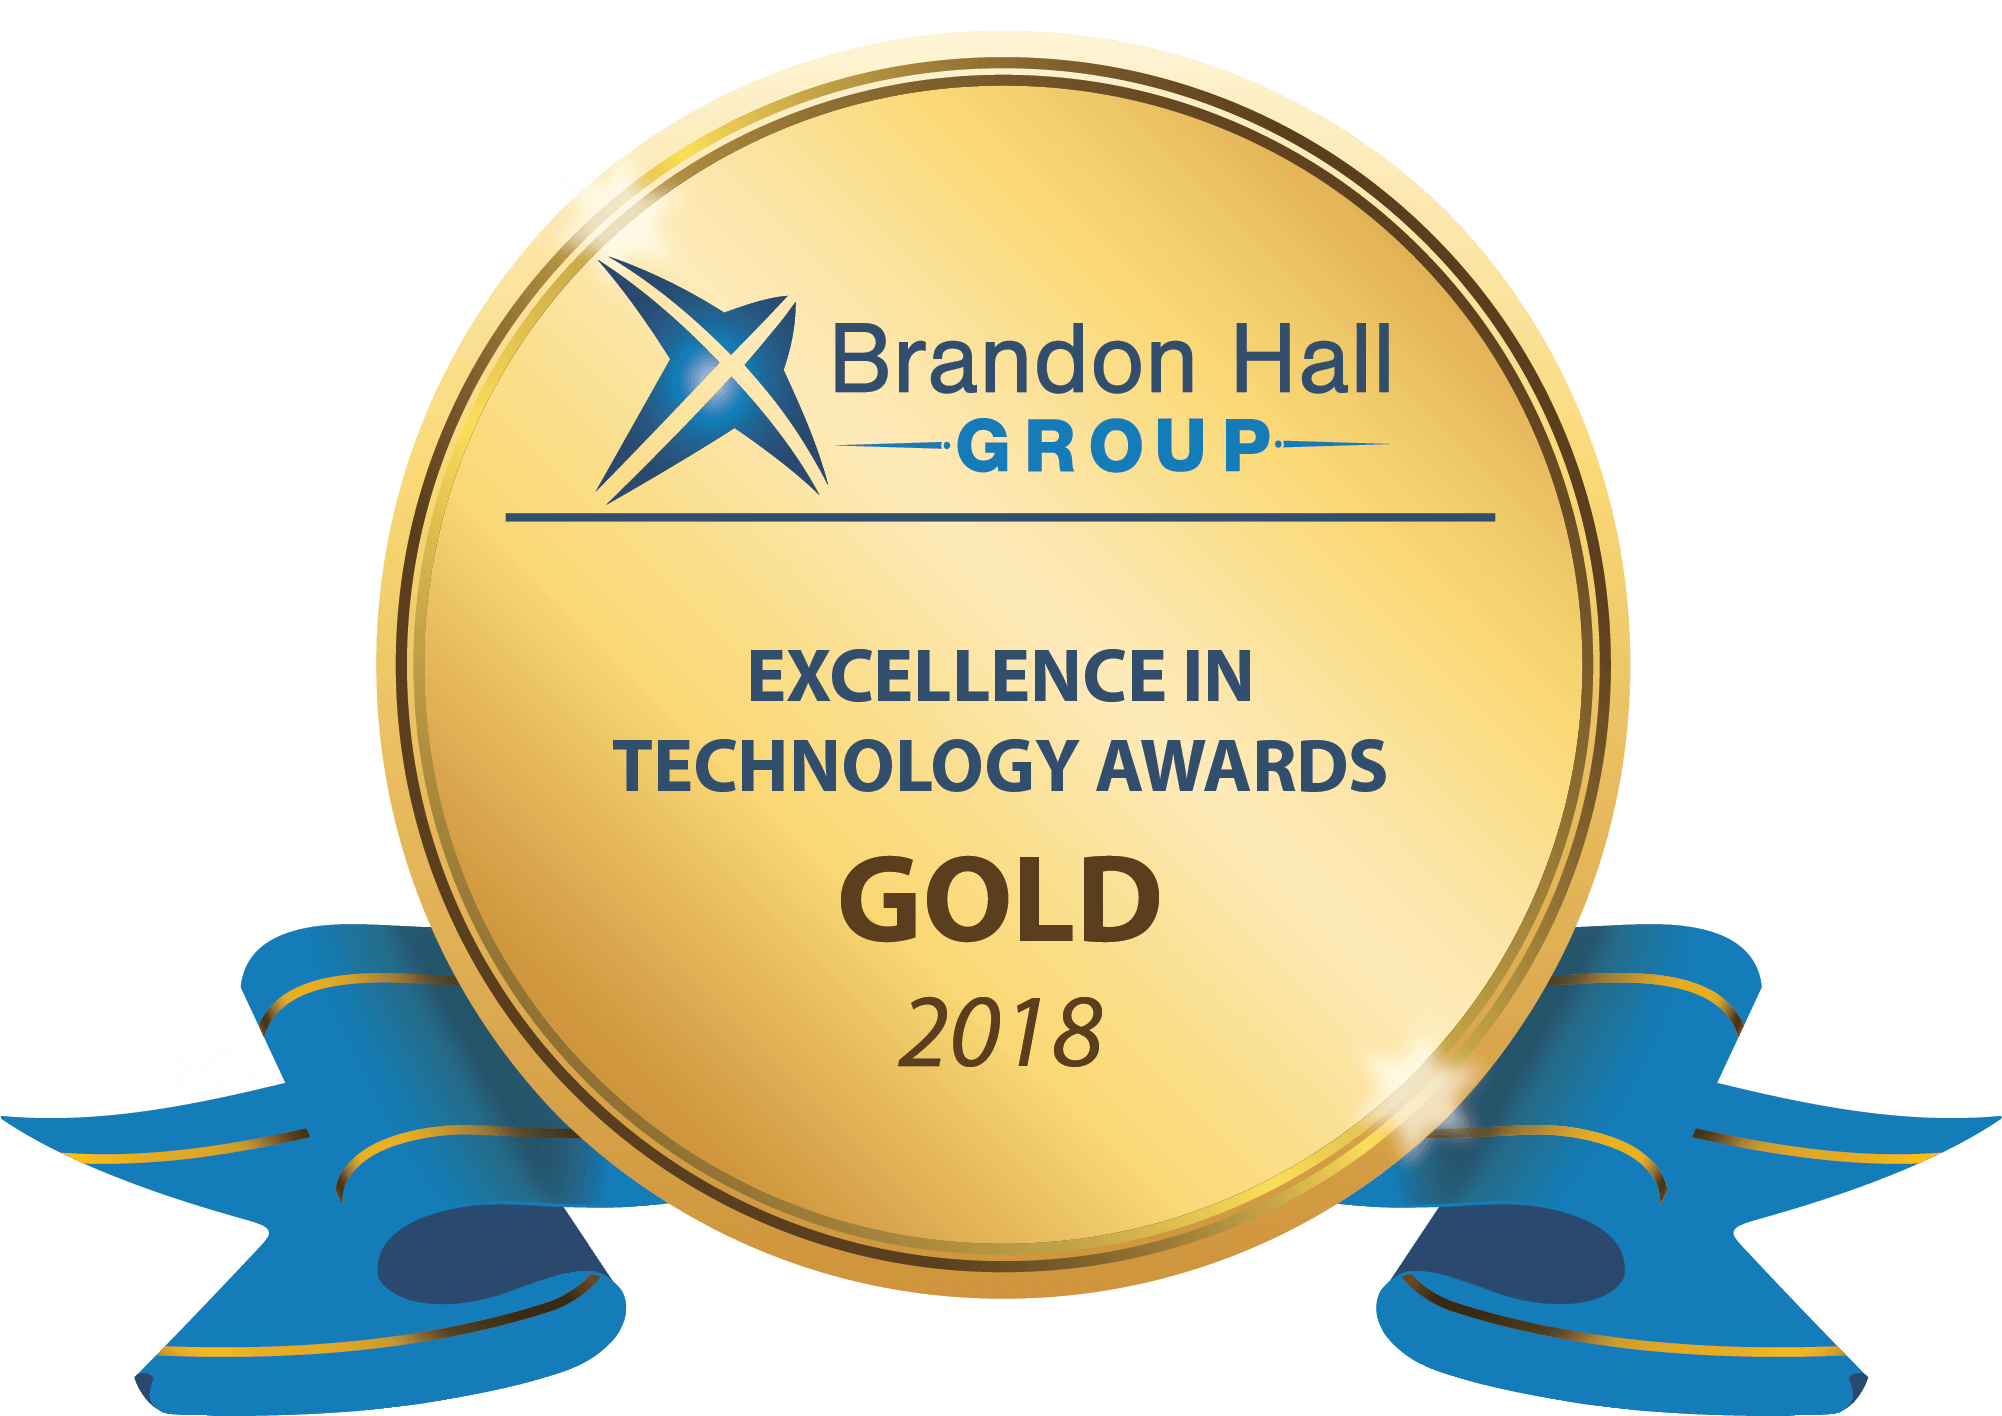 The 2018 Brandon Hall Group Excellence in Technology Awards Gold Medal. (A golden circle with a blue ribbon folded behind.)